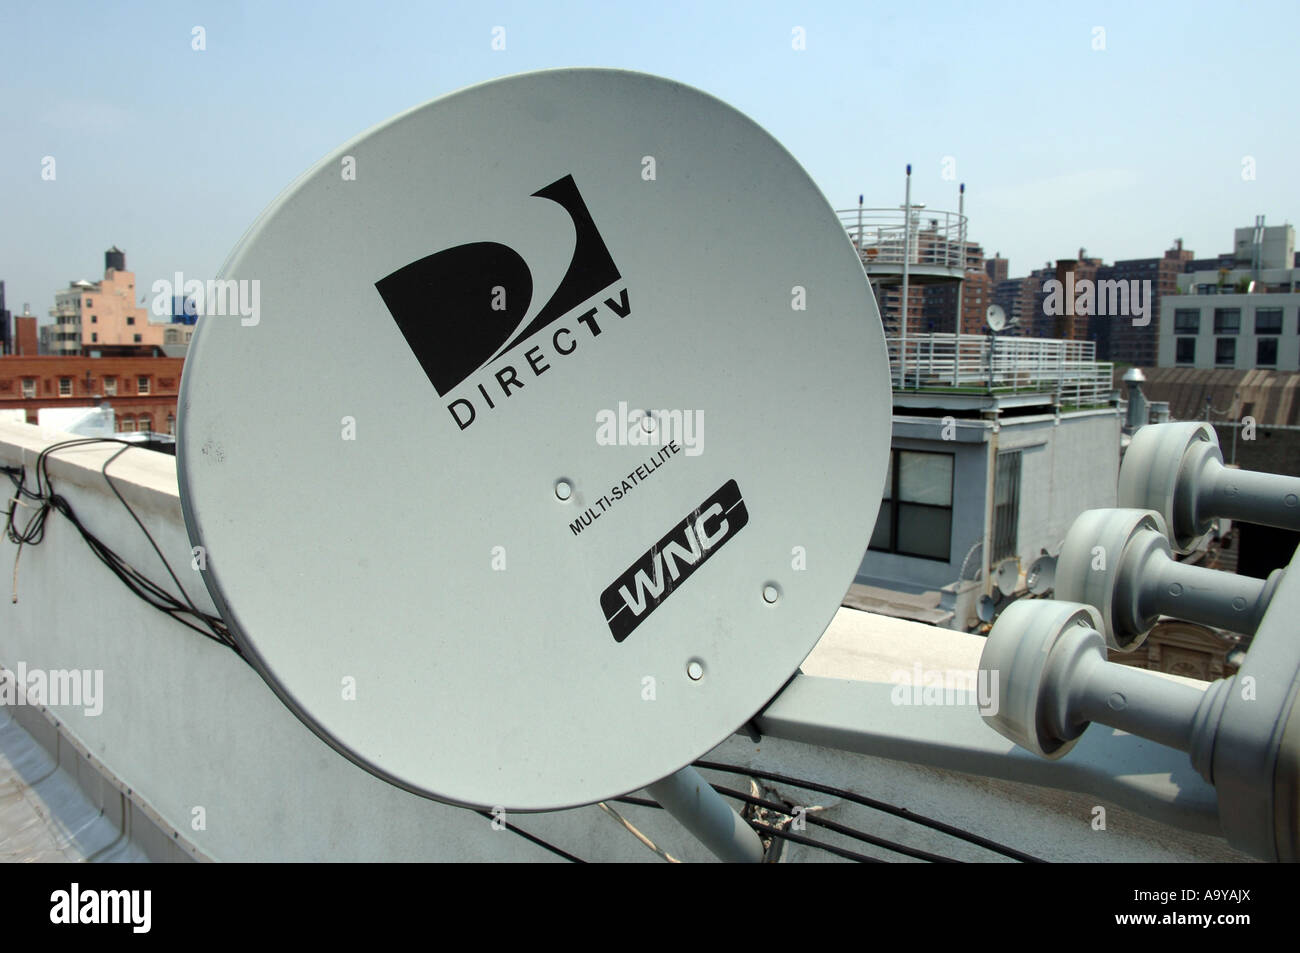 A Directv Satellite Dish On A Rooftop In Nyc Stock Photo Alamy